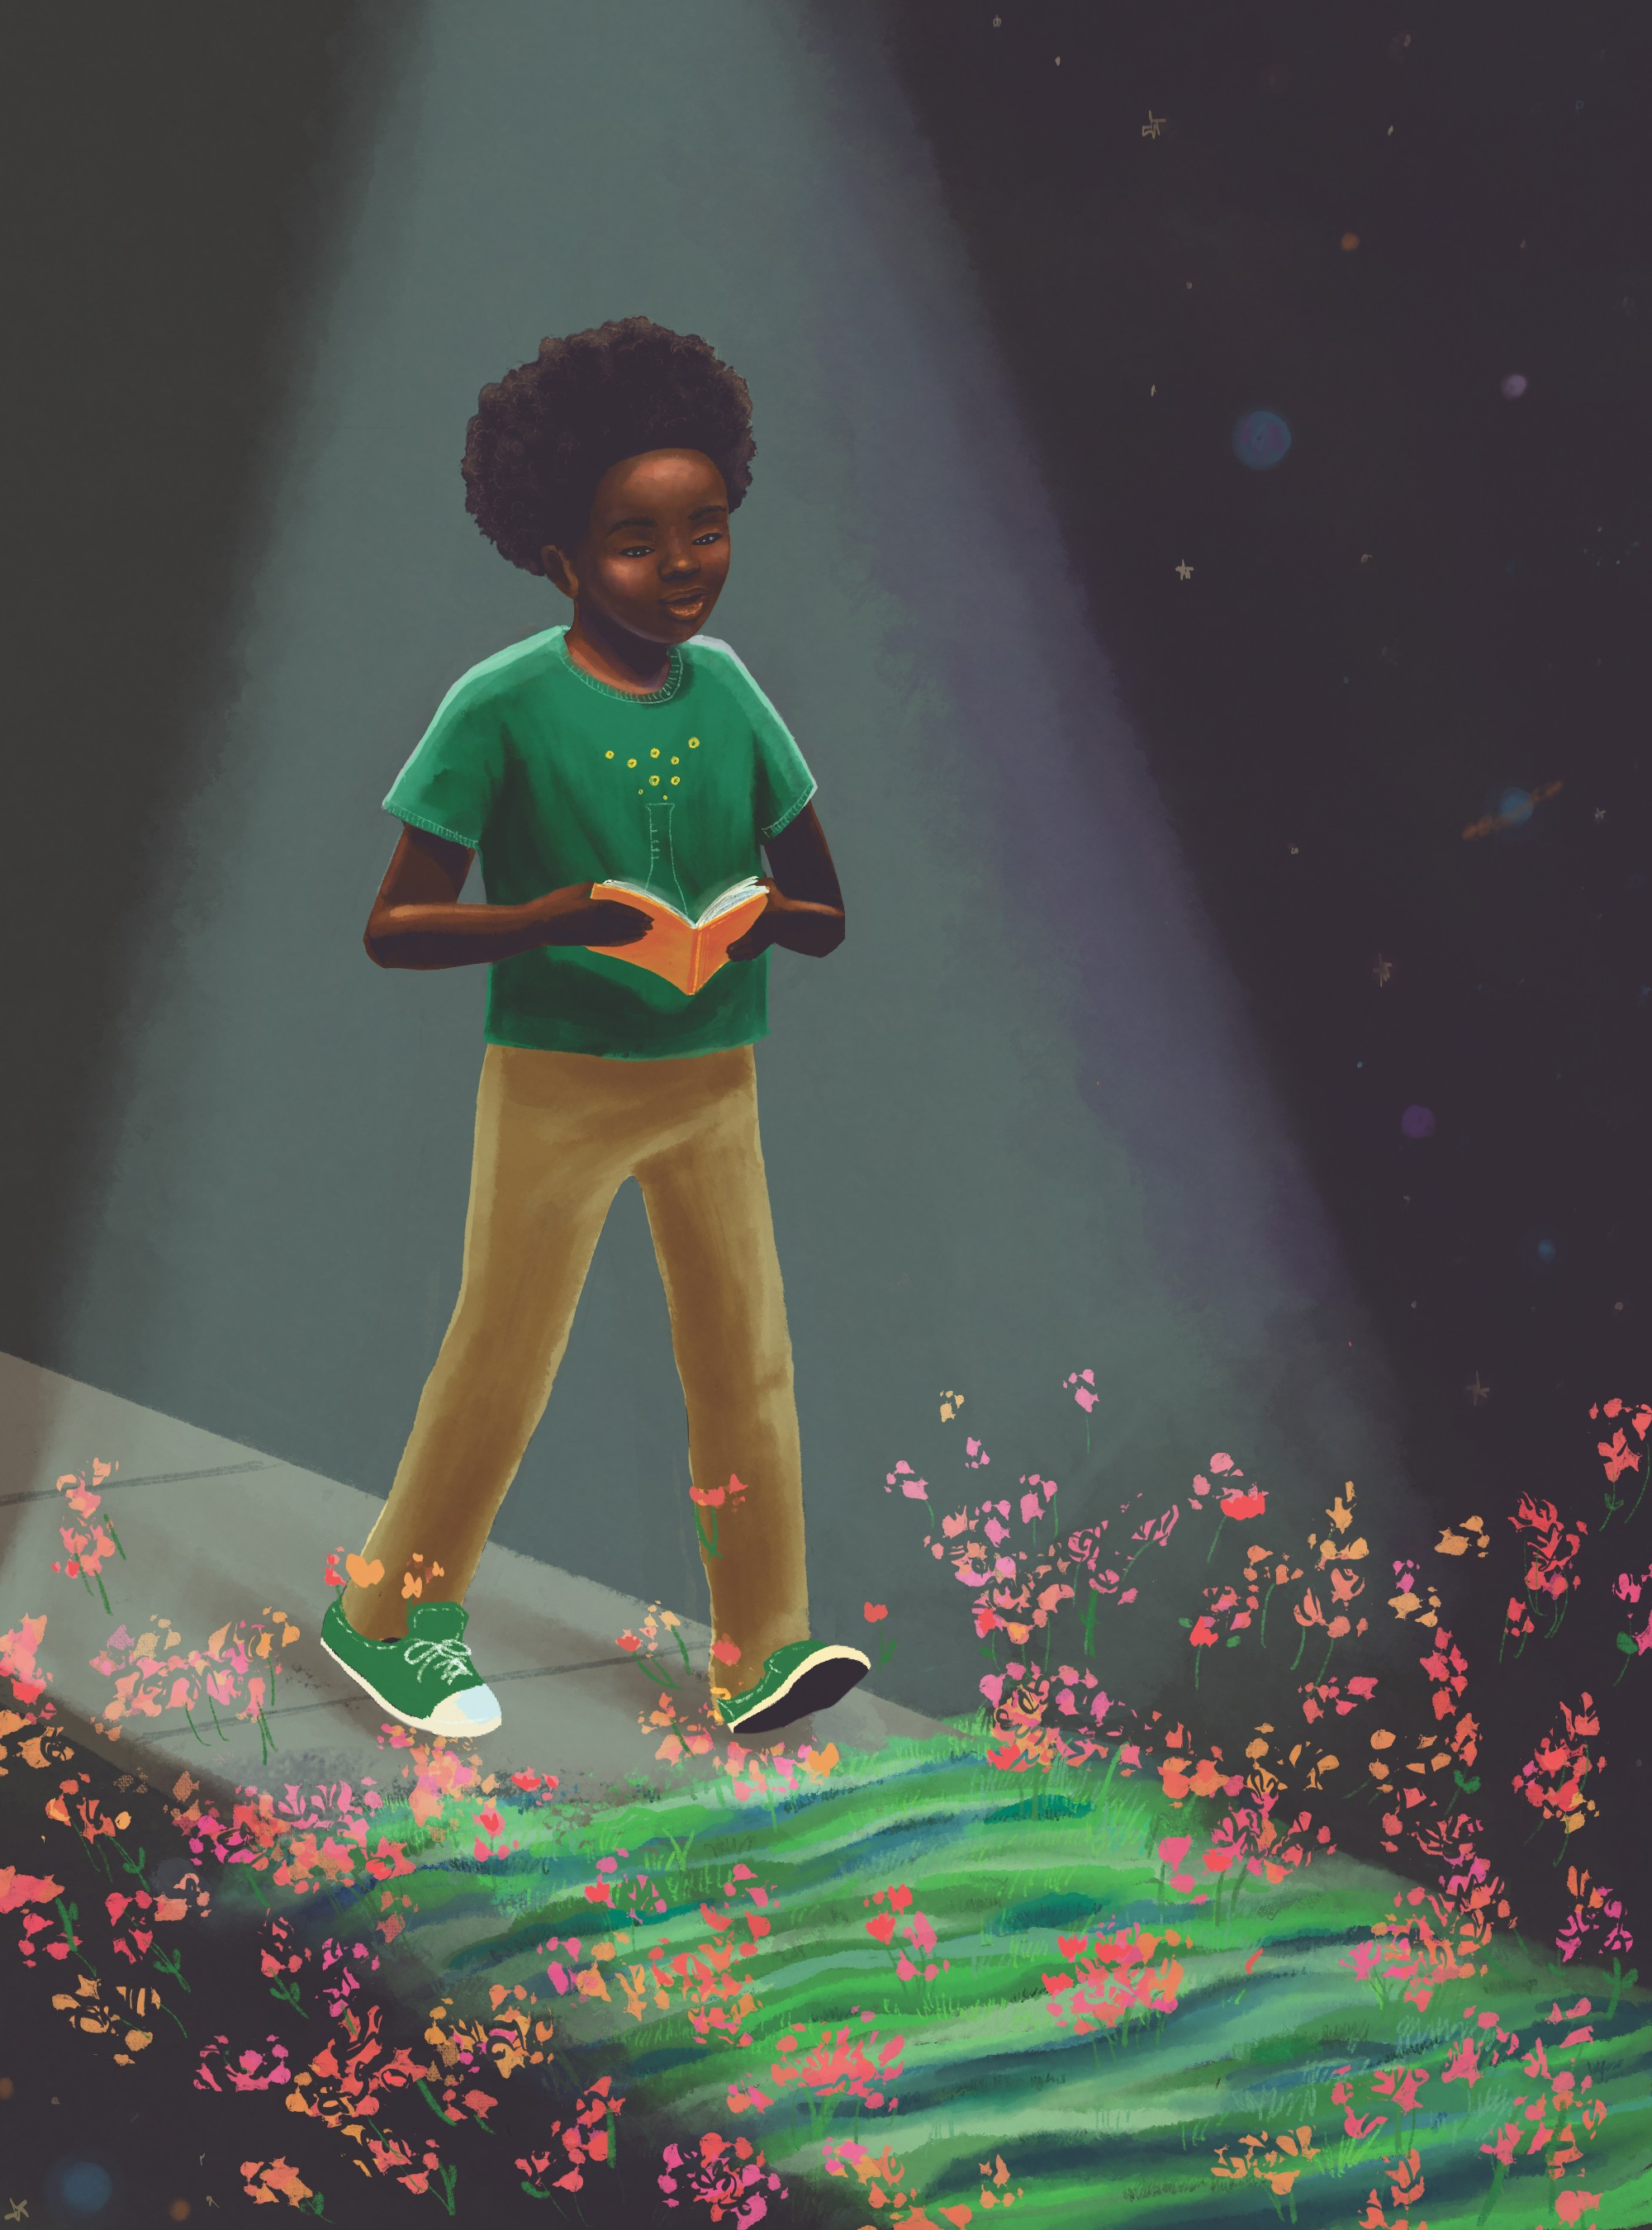 Illustration of a Black youth in a green t-shirt walking with an orange book in her hands. The background is black with flowers on the forefront.